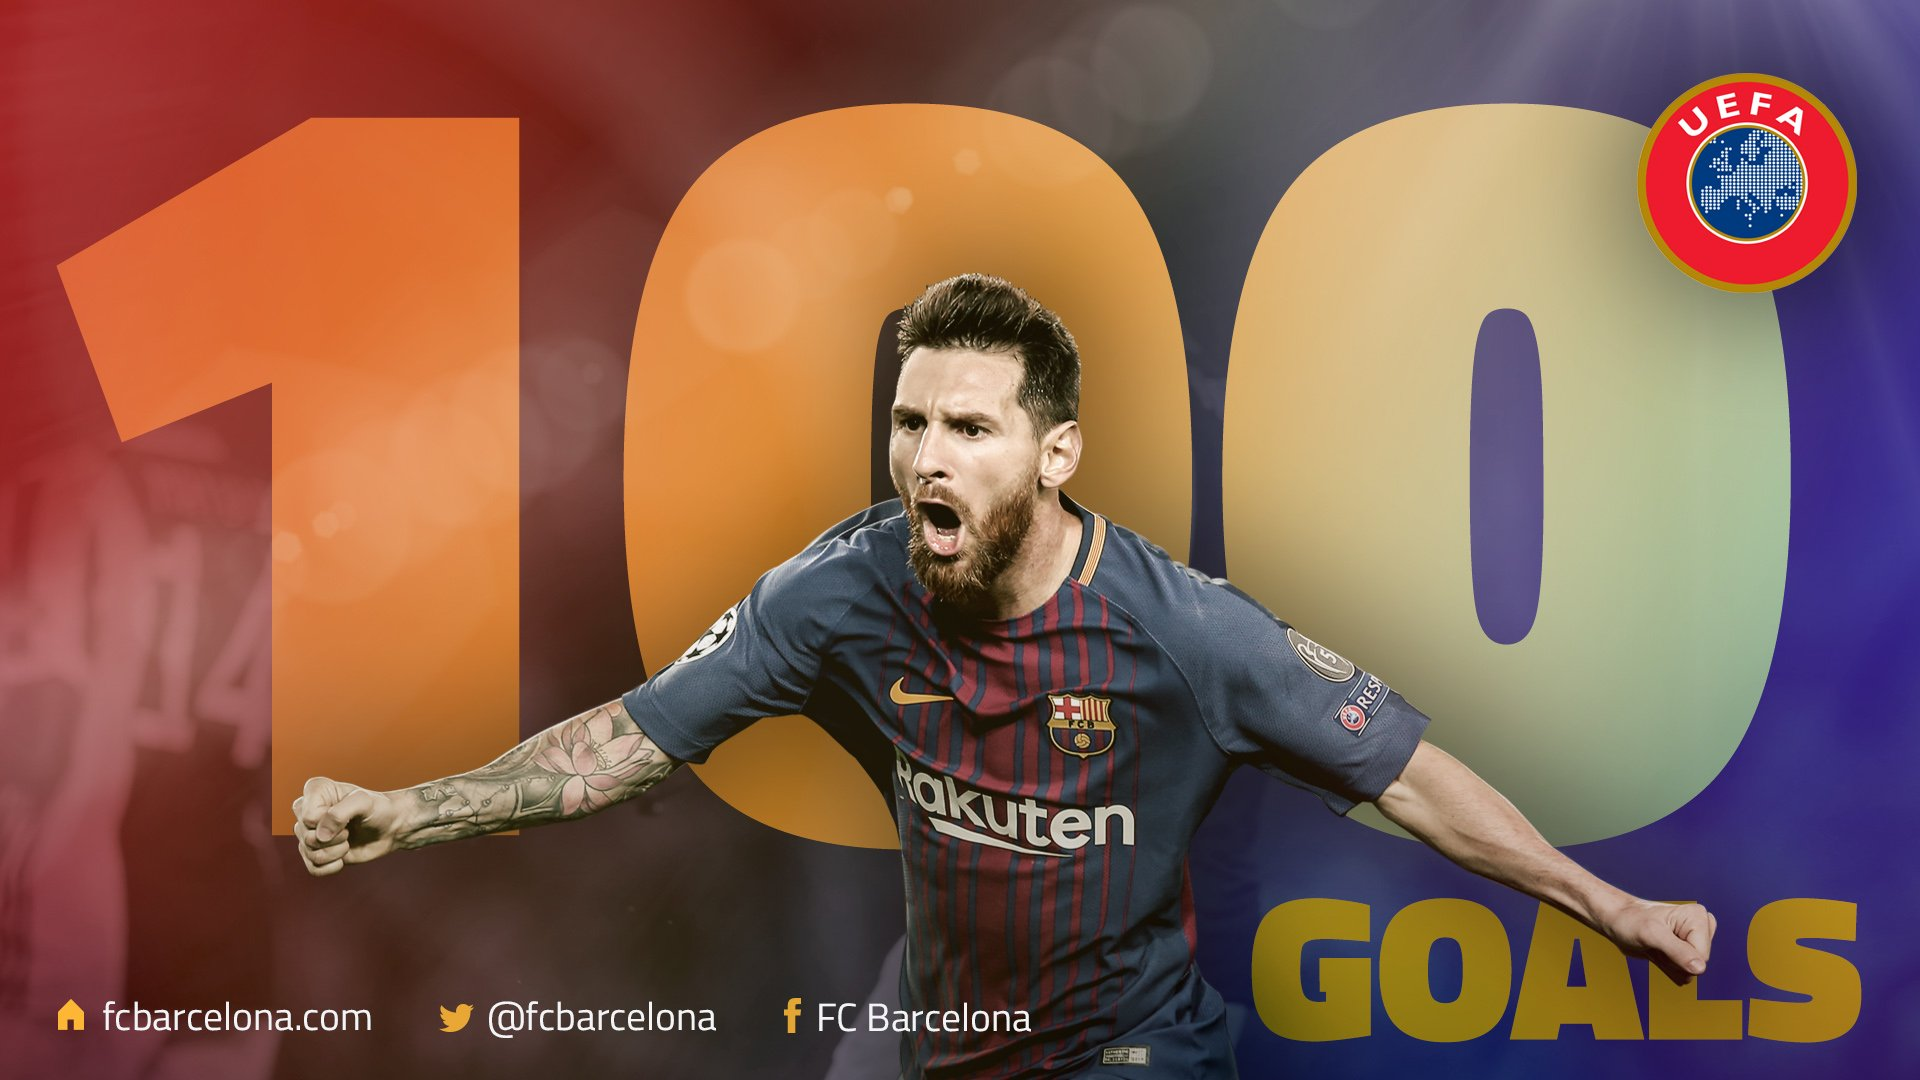 ⚽️ With that free kick #Messi reaches 100 goals in European competition! �� Congratulations Leo! �� #BarçaOlympiacos https://t.co/onwLfCzyyt